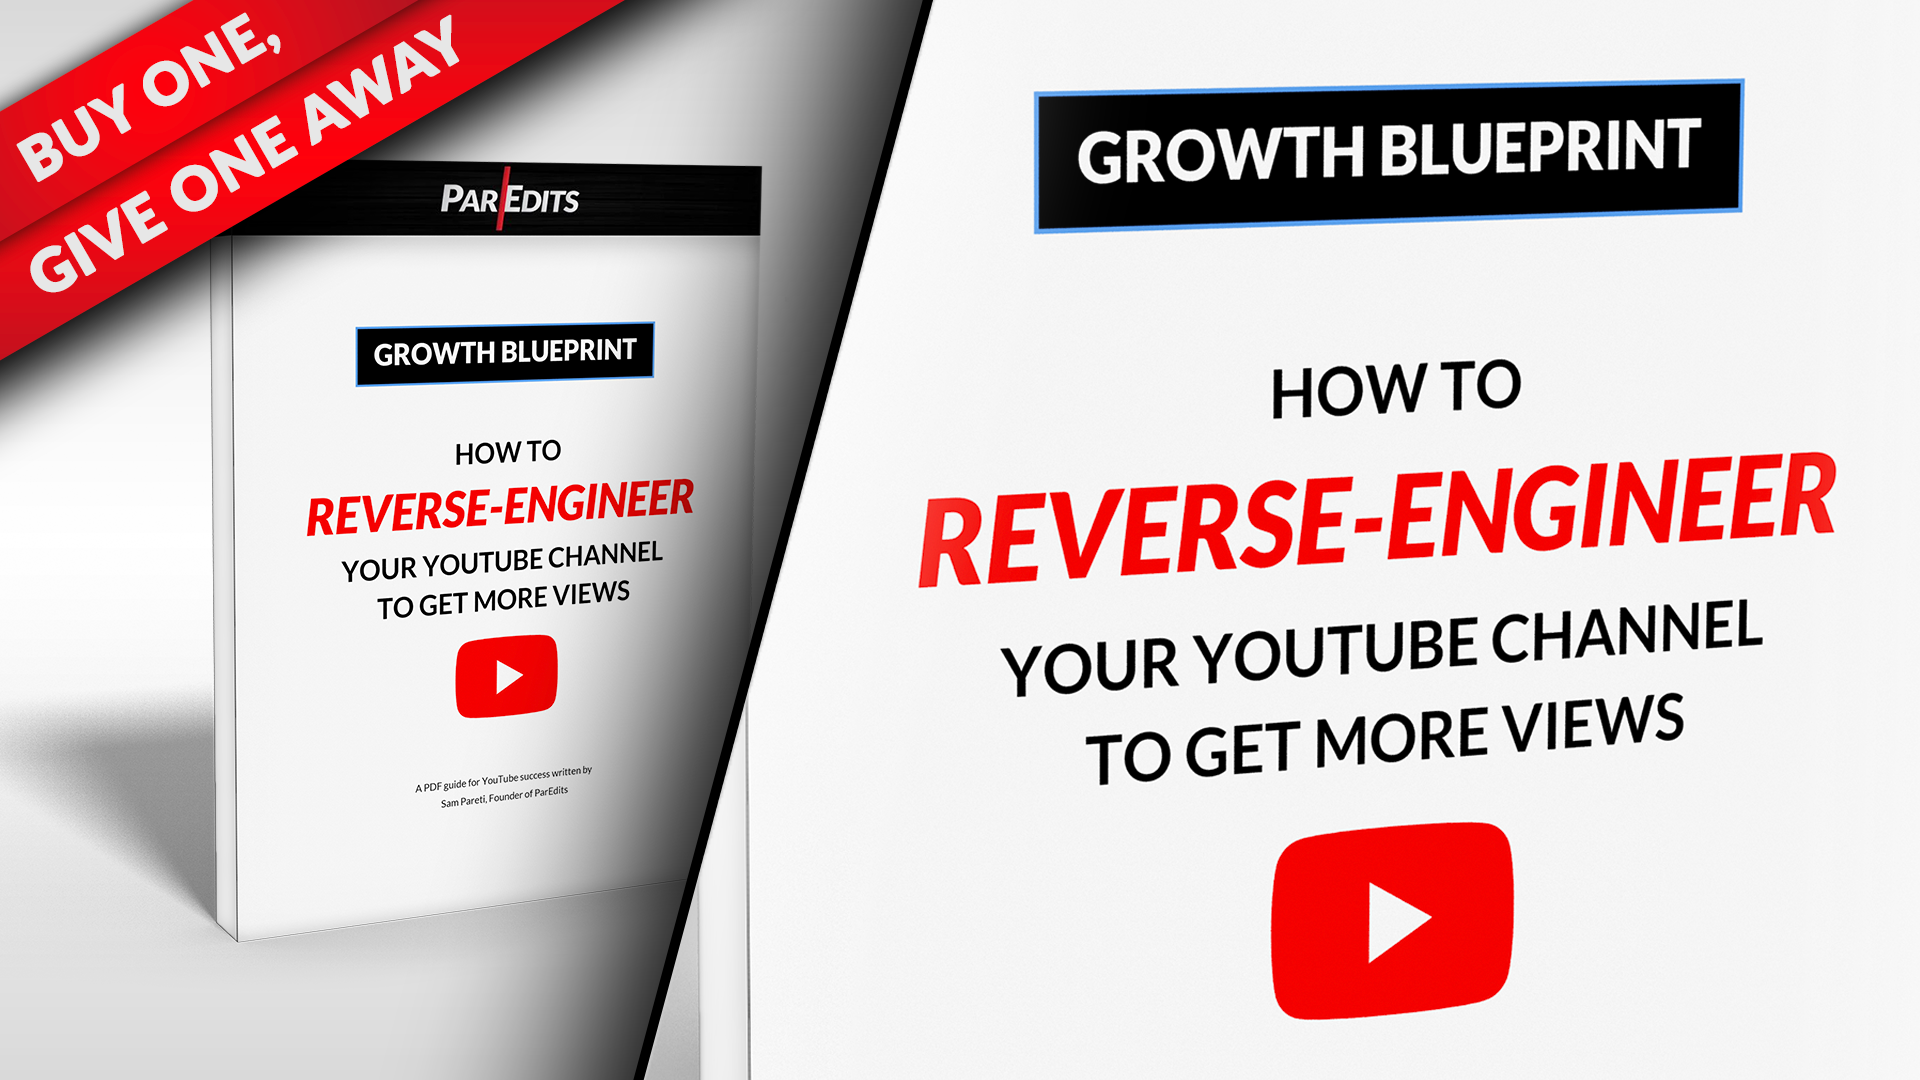 Growth Blueprint: How to Reverse-Engineer Your YouTube Channel to Get More Views